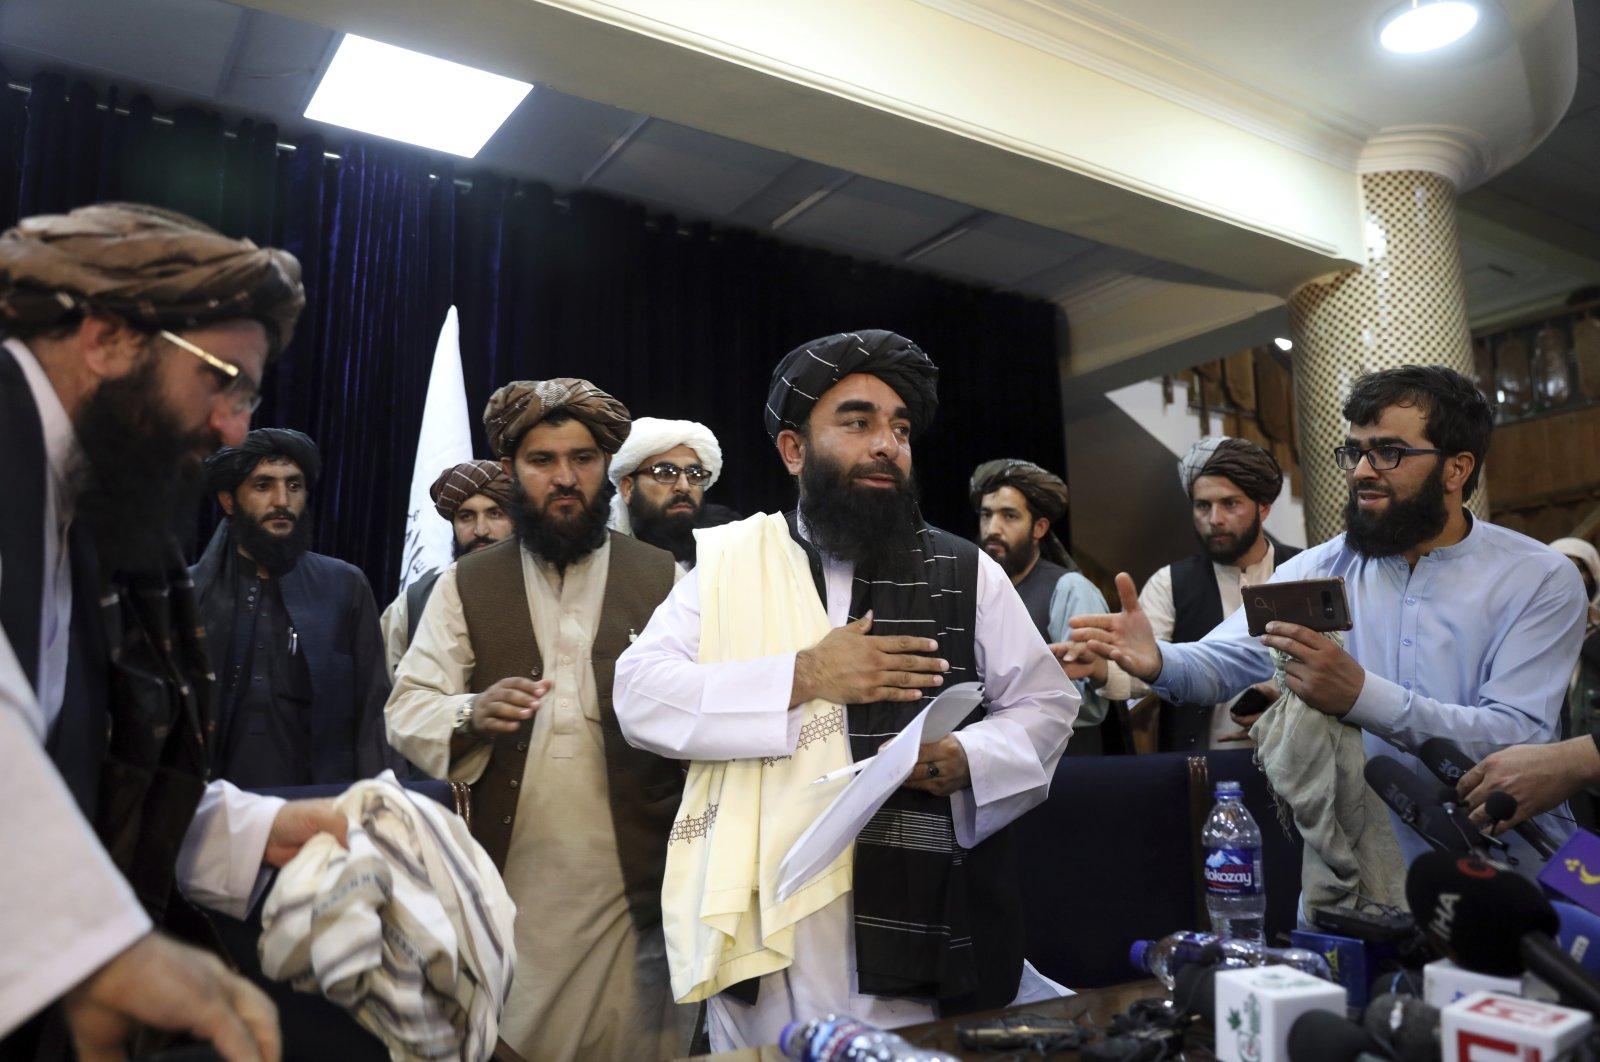 Taliban spokesperson Zabihullah Mujahid (C) leaves after his first news conference, in Kabul, Afghanistan, Aug. 17, 2021. (AP Photo)